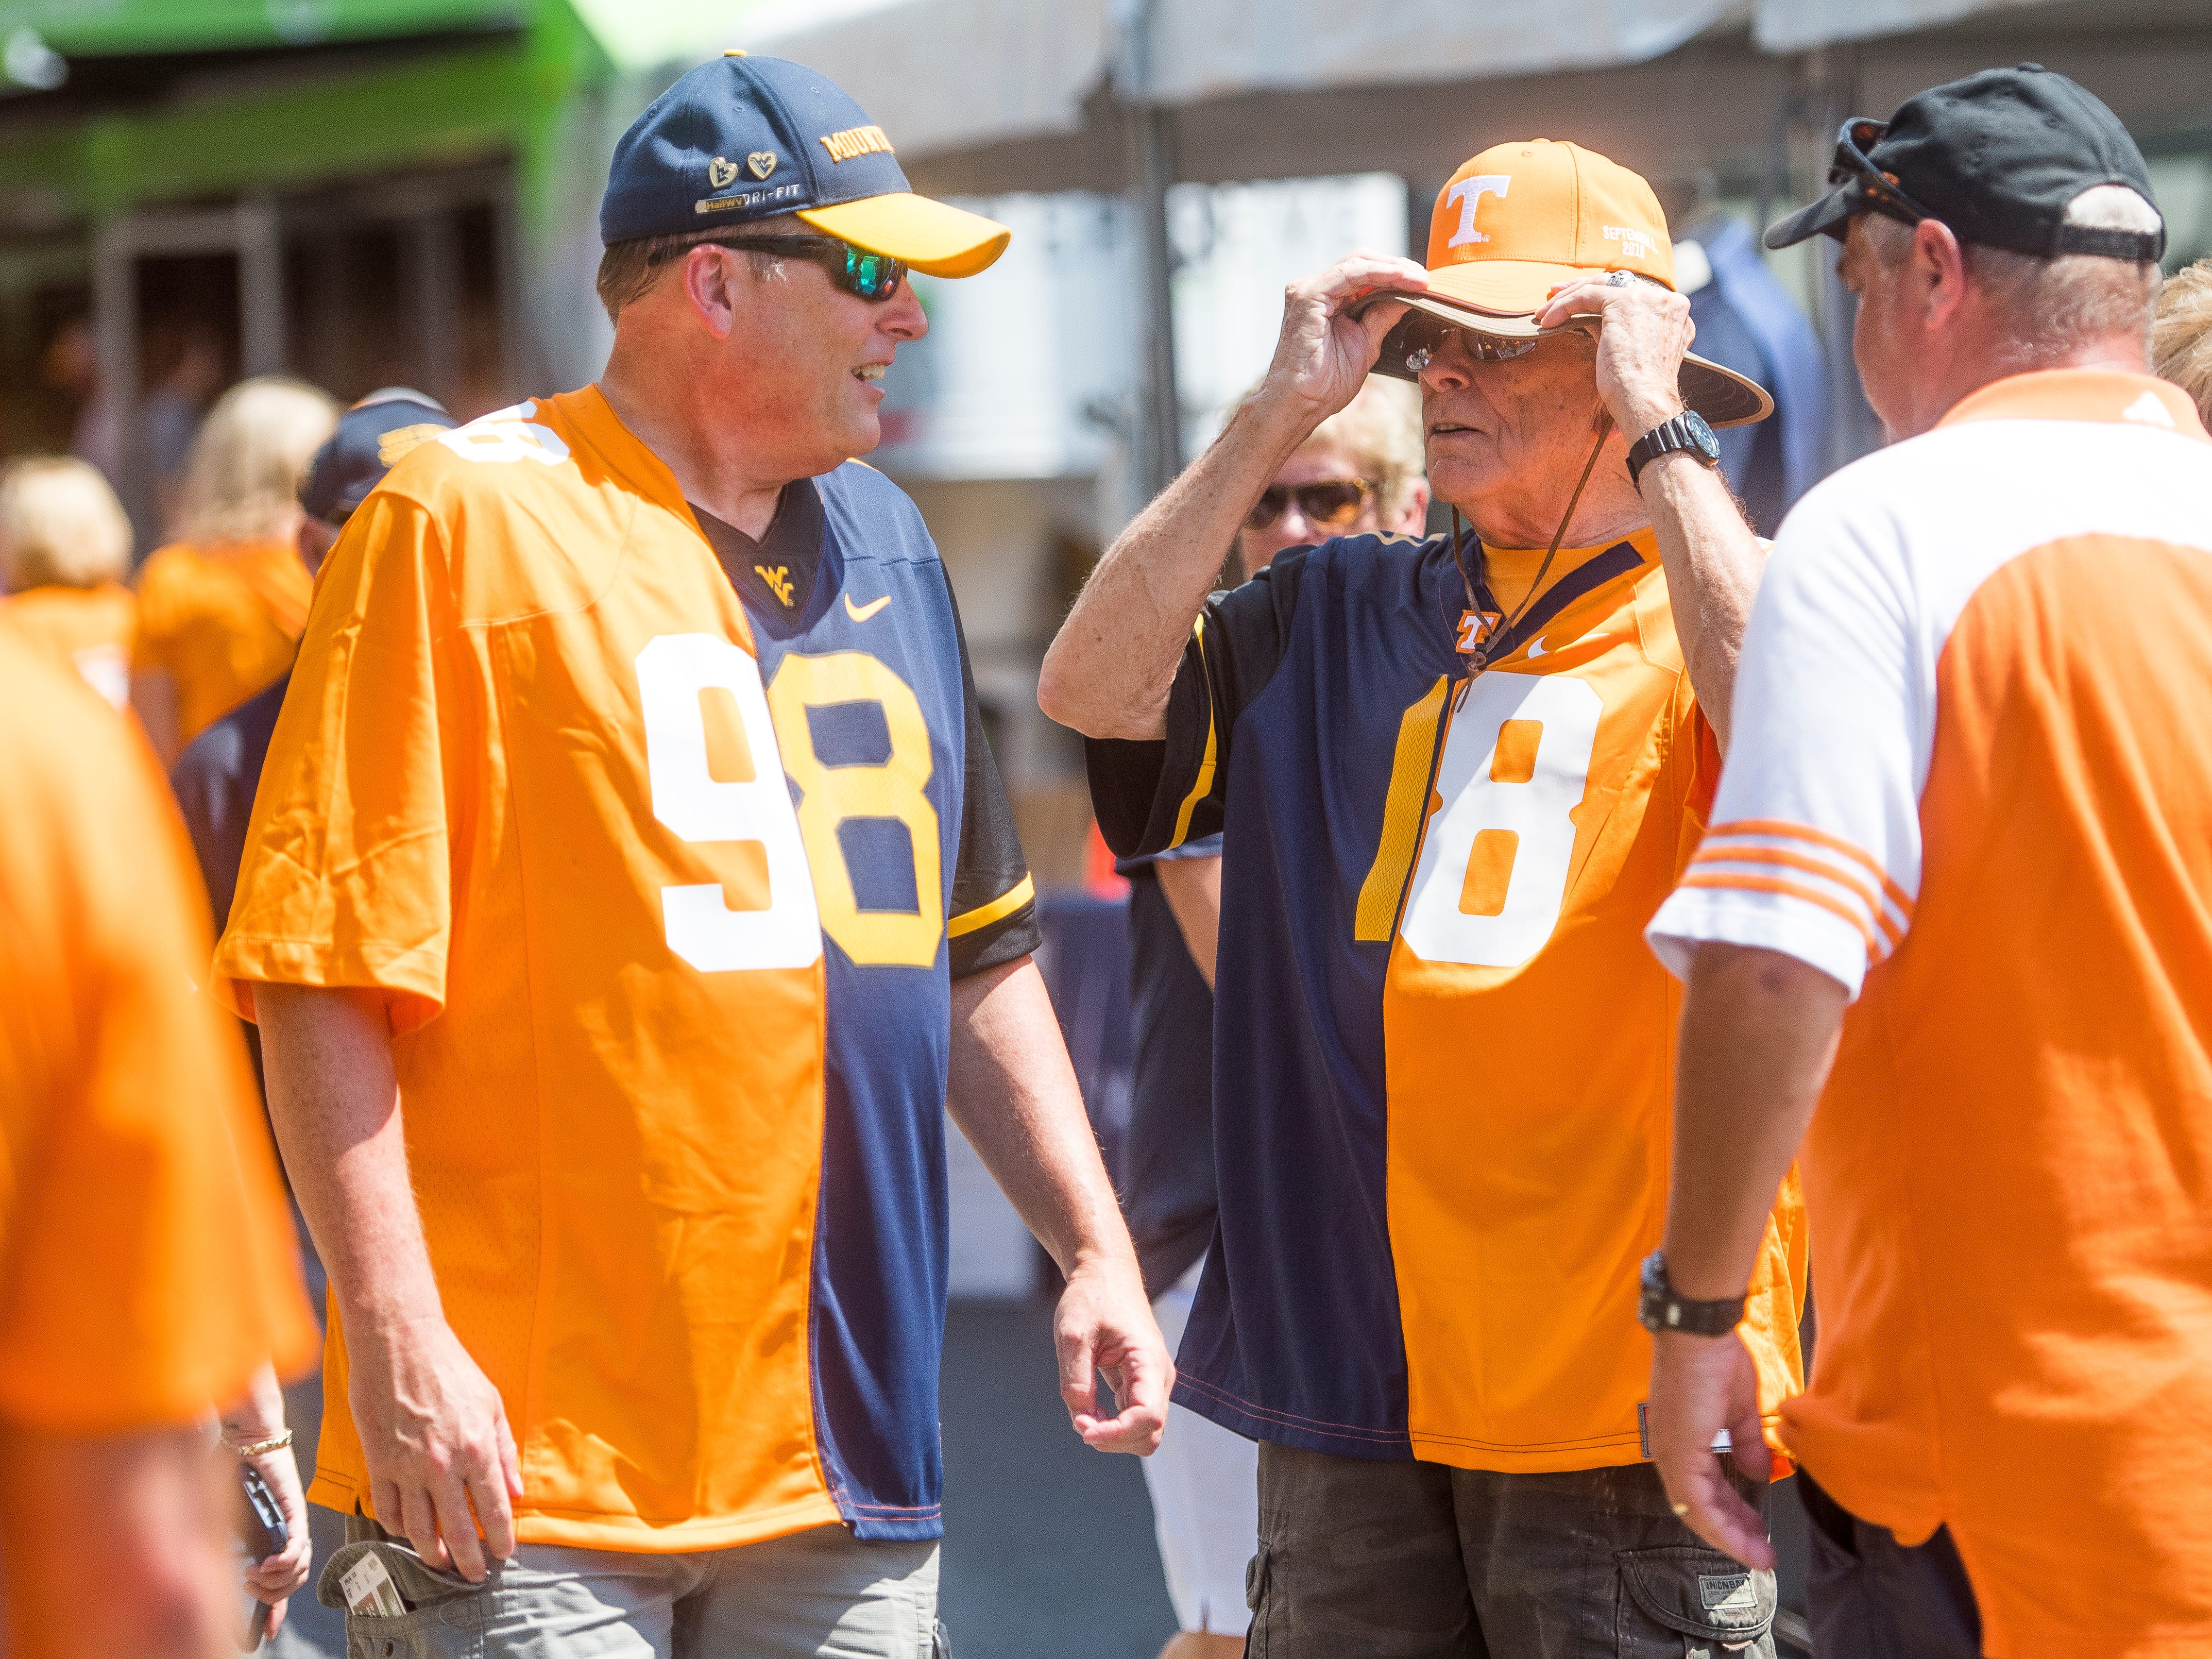 Lee Kelly, left, and Robert Kelly, right, sport jerseys supporting both the Vols and WVU before the Tennessee Volunteers' game against West Virginia in the Belk College Kickoff at Bank of America Stadium in Charlotte, N.C., on Saturday, Sept. 1, 2018.